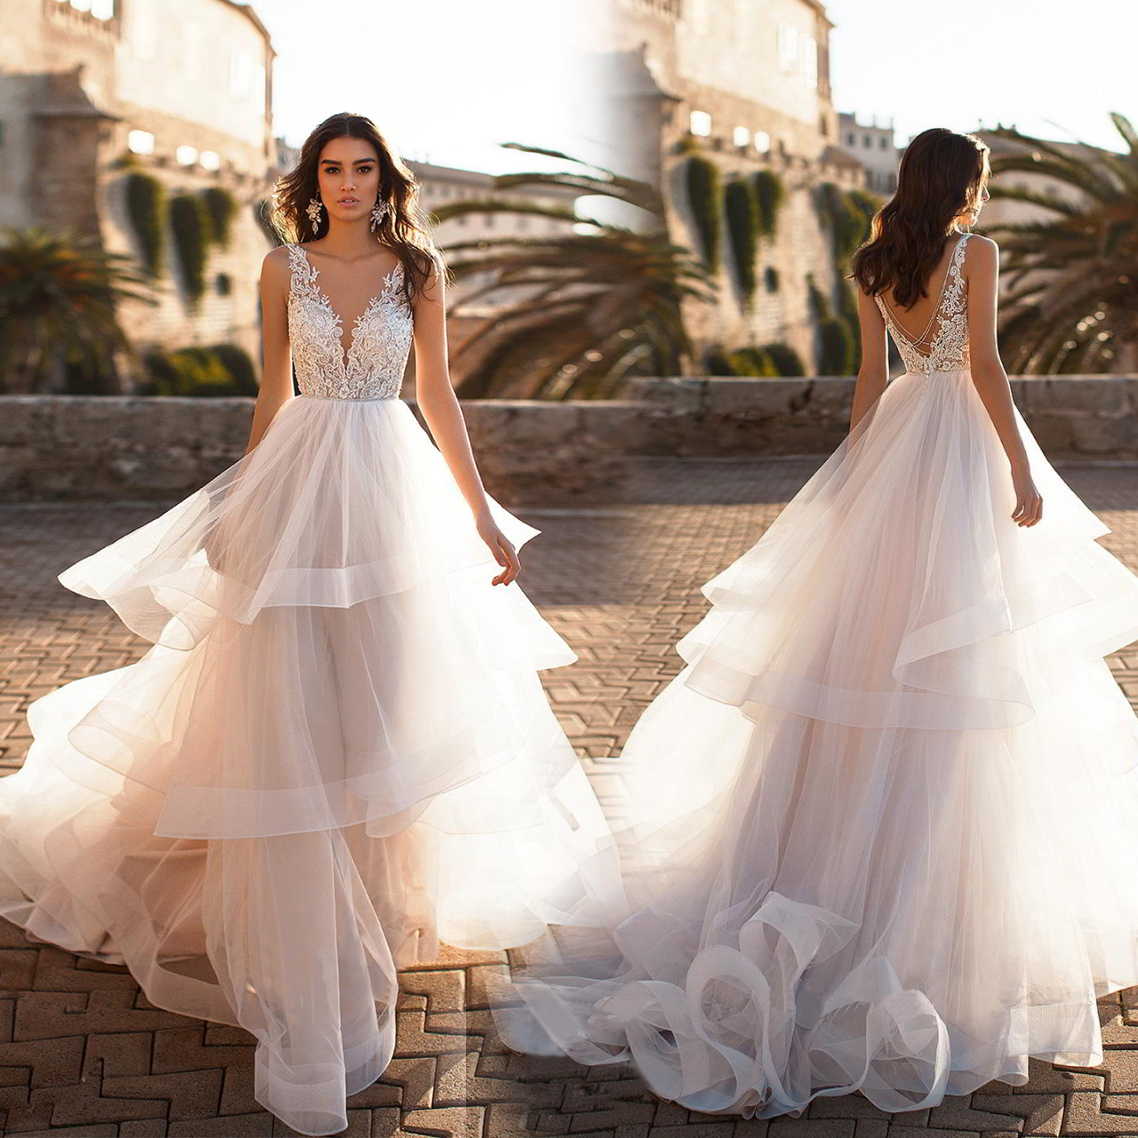 Wedding Dresses 2021 Mrs Win Classic Sexy V-neck Court Train Wedding Gown Sexy Illusion Vestido De Noiva Robe De Mariee